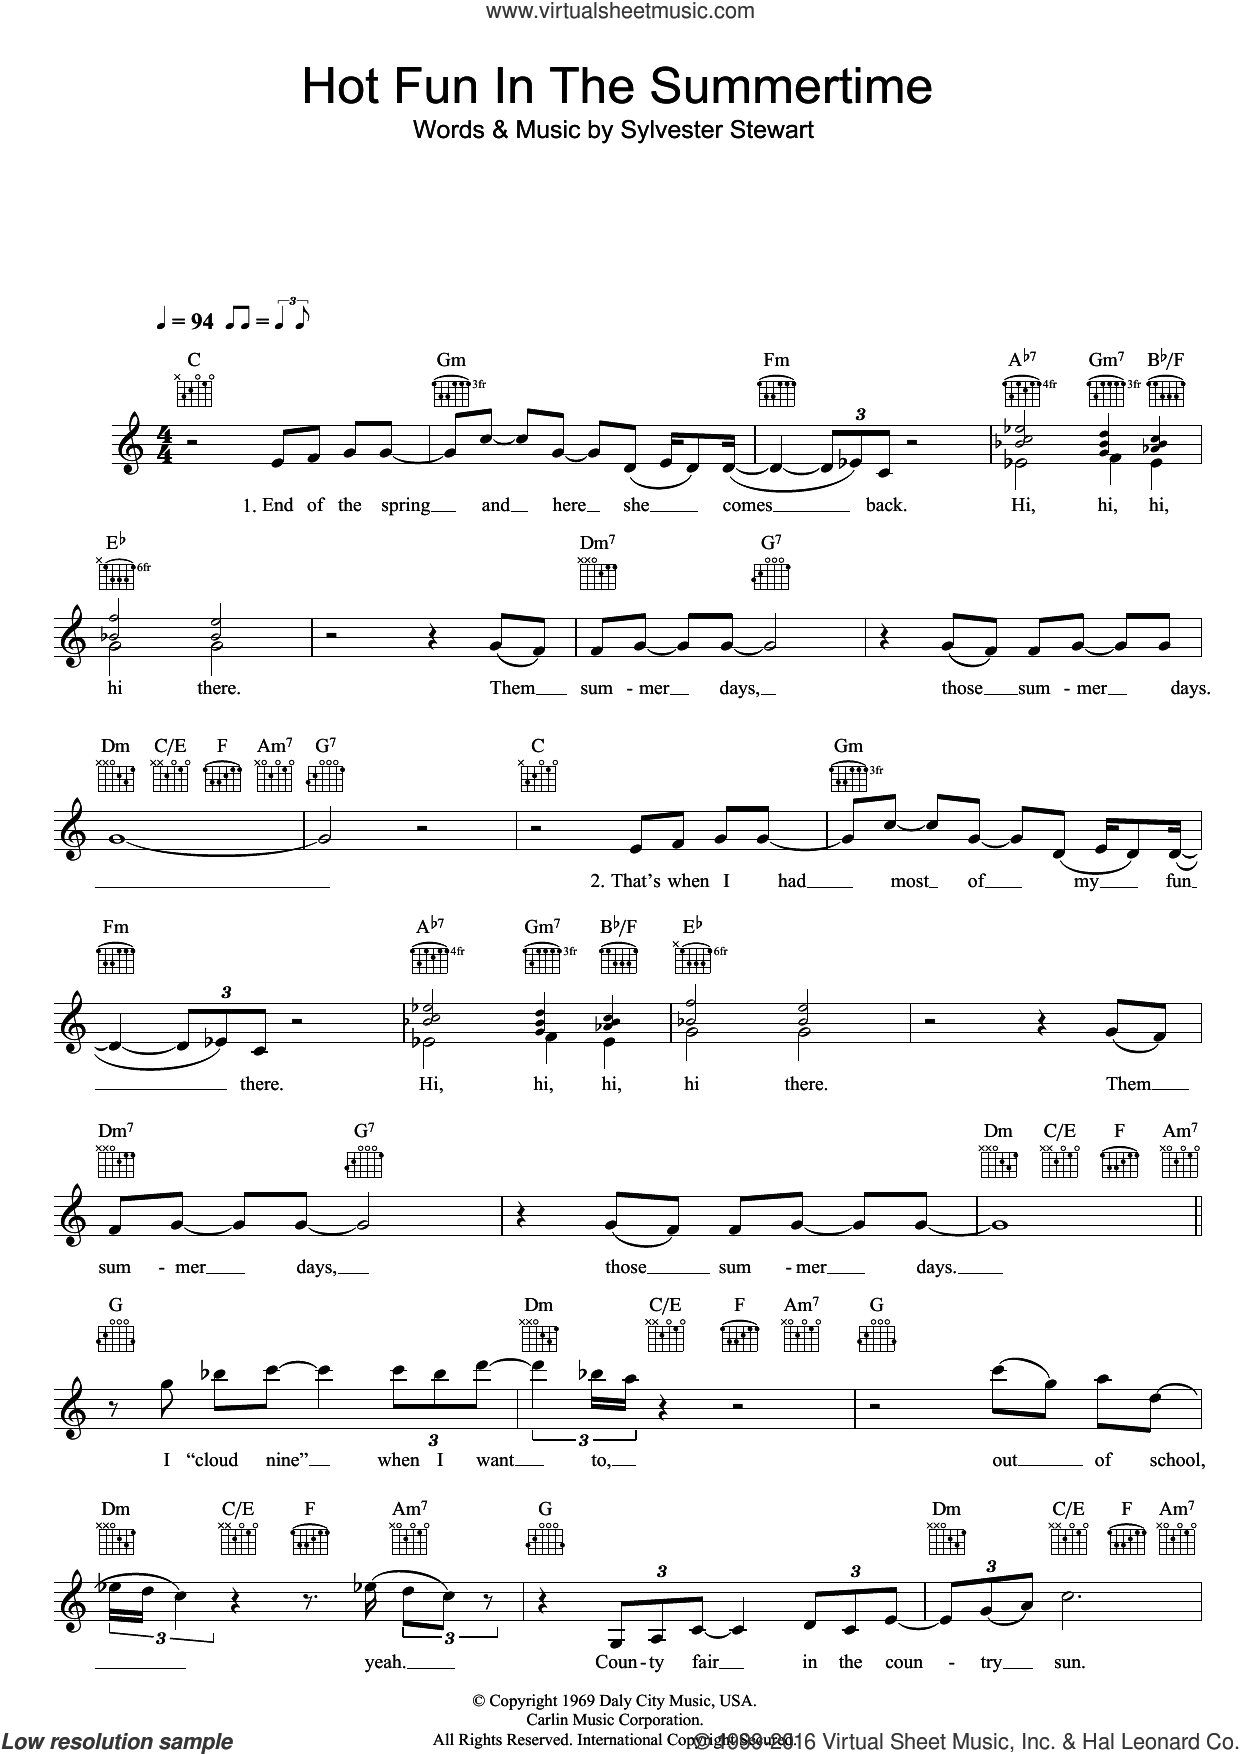 Hot Fun In The Summertime sheet music for voice and other instruments (fake book) by Sly & The Family Stone and Sylvester Stewart, intermediate skill level